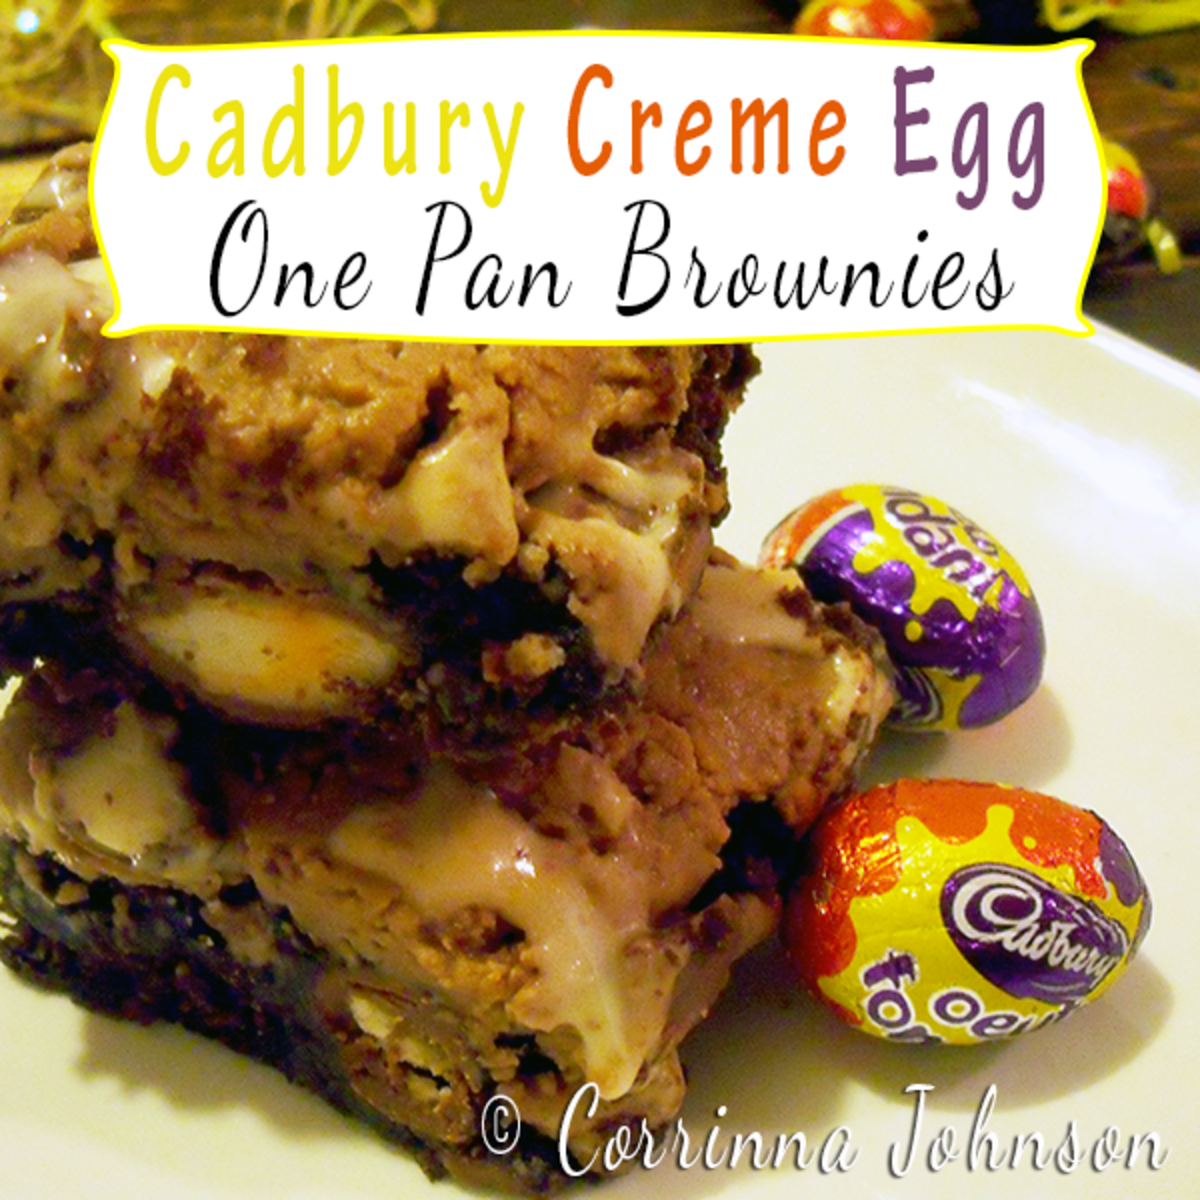 How to Make One-Pan Brownies With Cadbury Creme Eggs